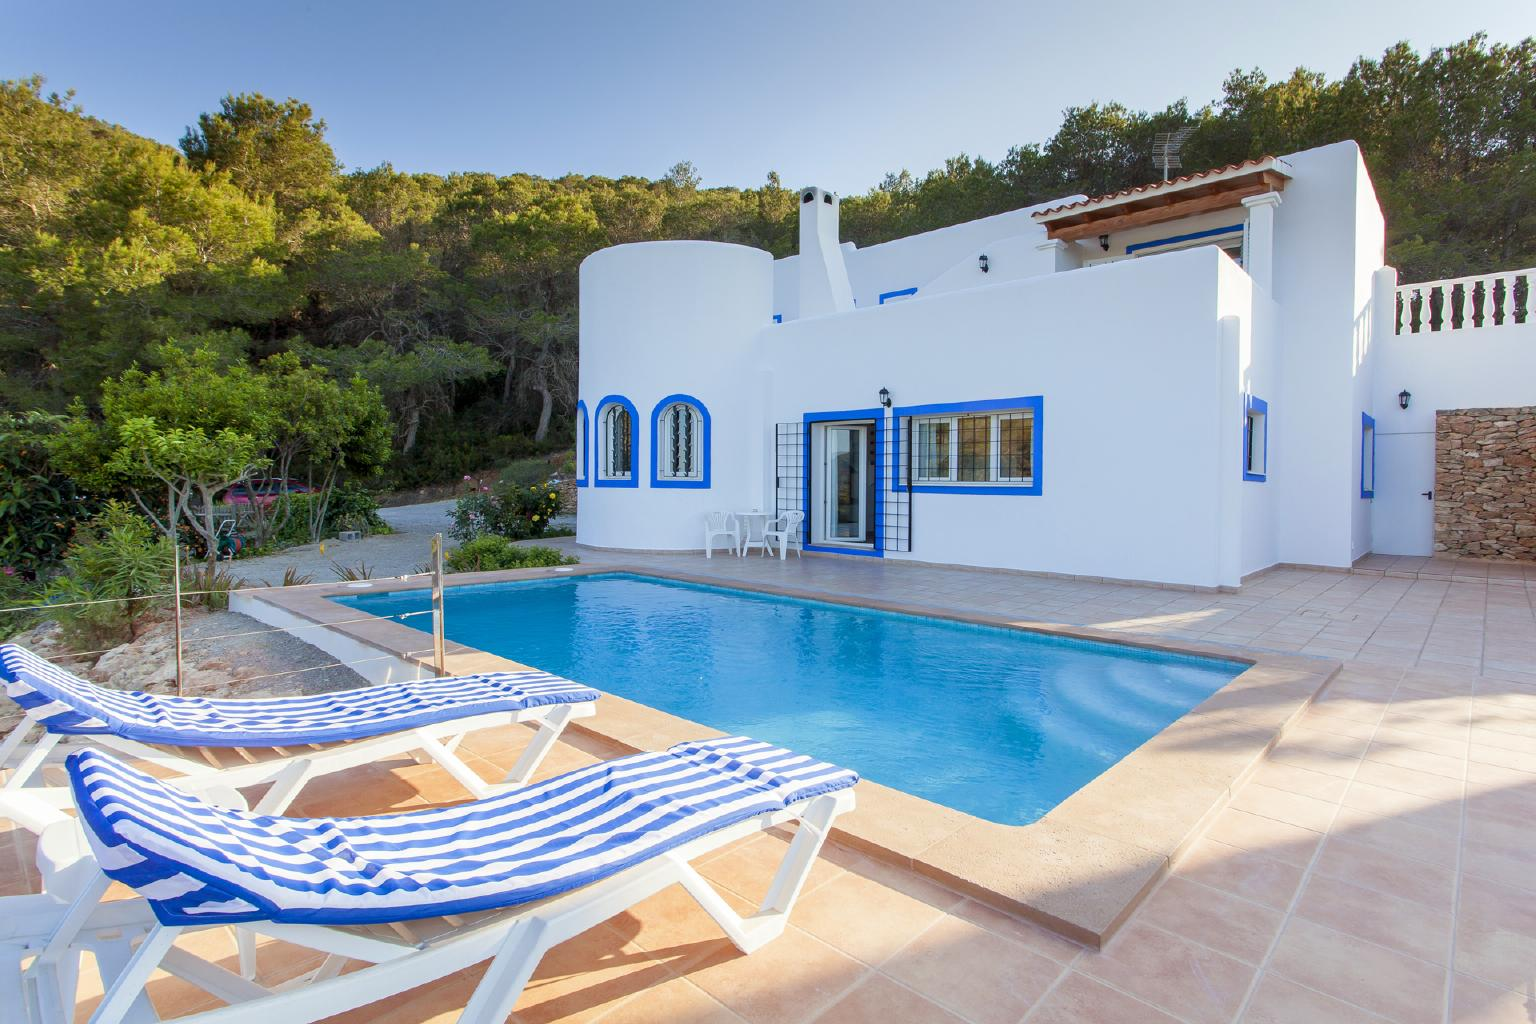 Typical Ibizan house with pool and in a natural environment